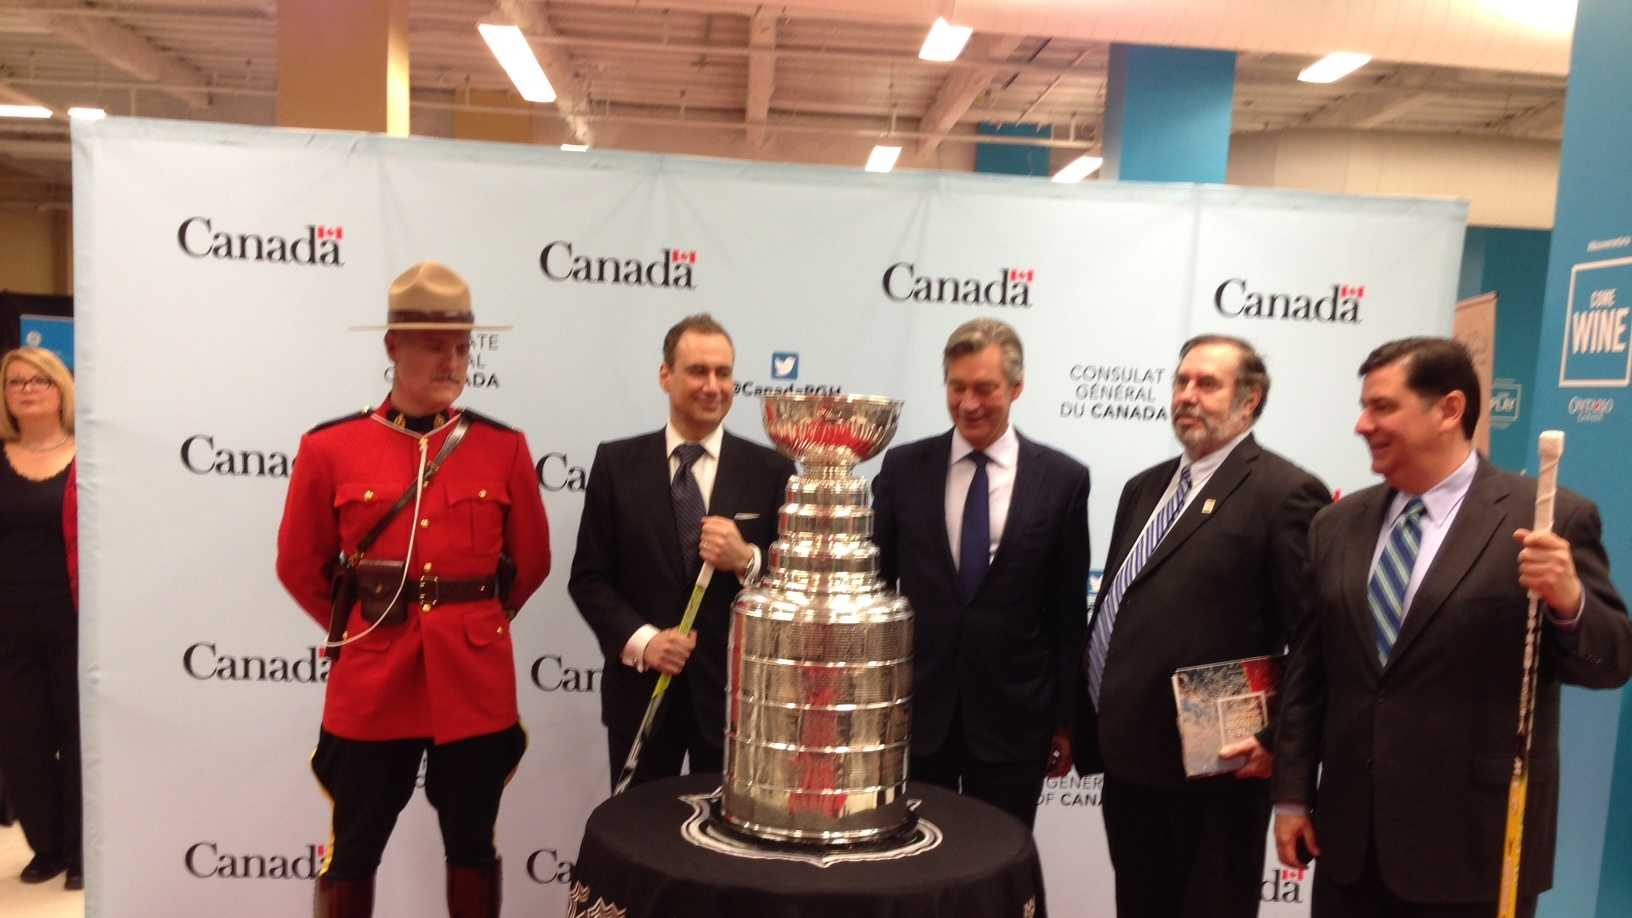 Pop-Up Canada! is a celebration of Pittsburgh's relationship with Canada. Pictured left to right: A Royal Canadian Mounted Police member&#x3B; John Prato, Consul General of Canada&#x3B; Gary Doer, Ambassador of Canada to the U.S.&#x3B; Leo Gerard, United Steelworkers president&#x3B; Mayor Bill Peduto.